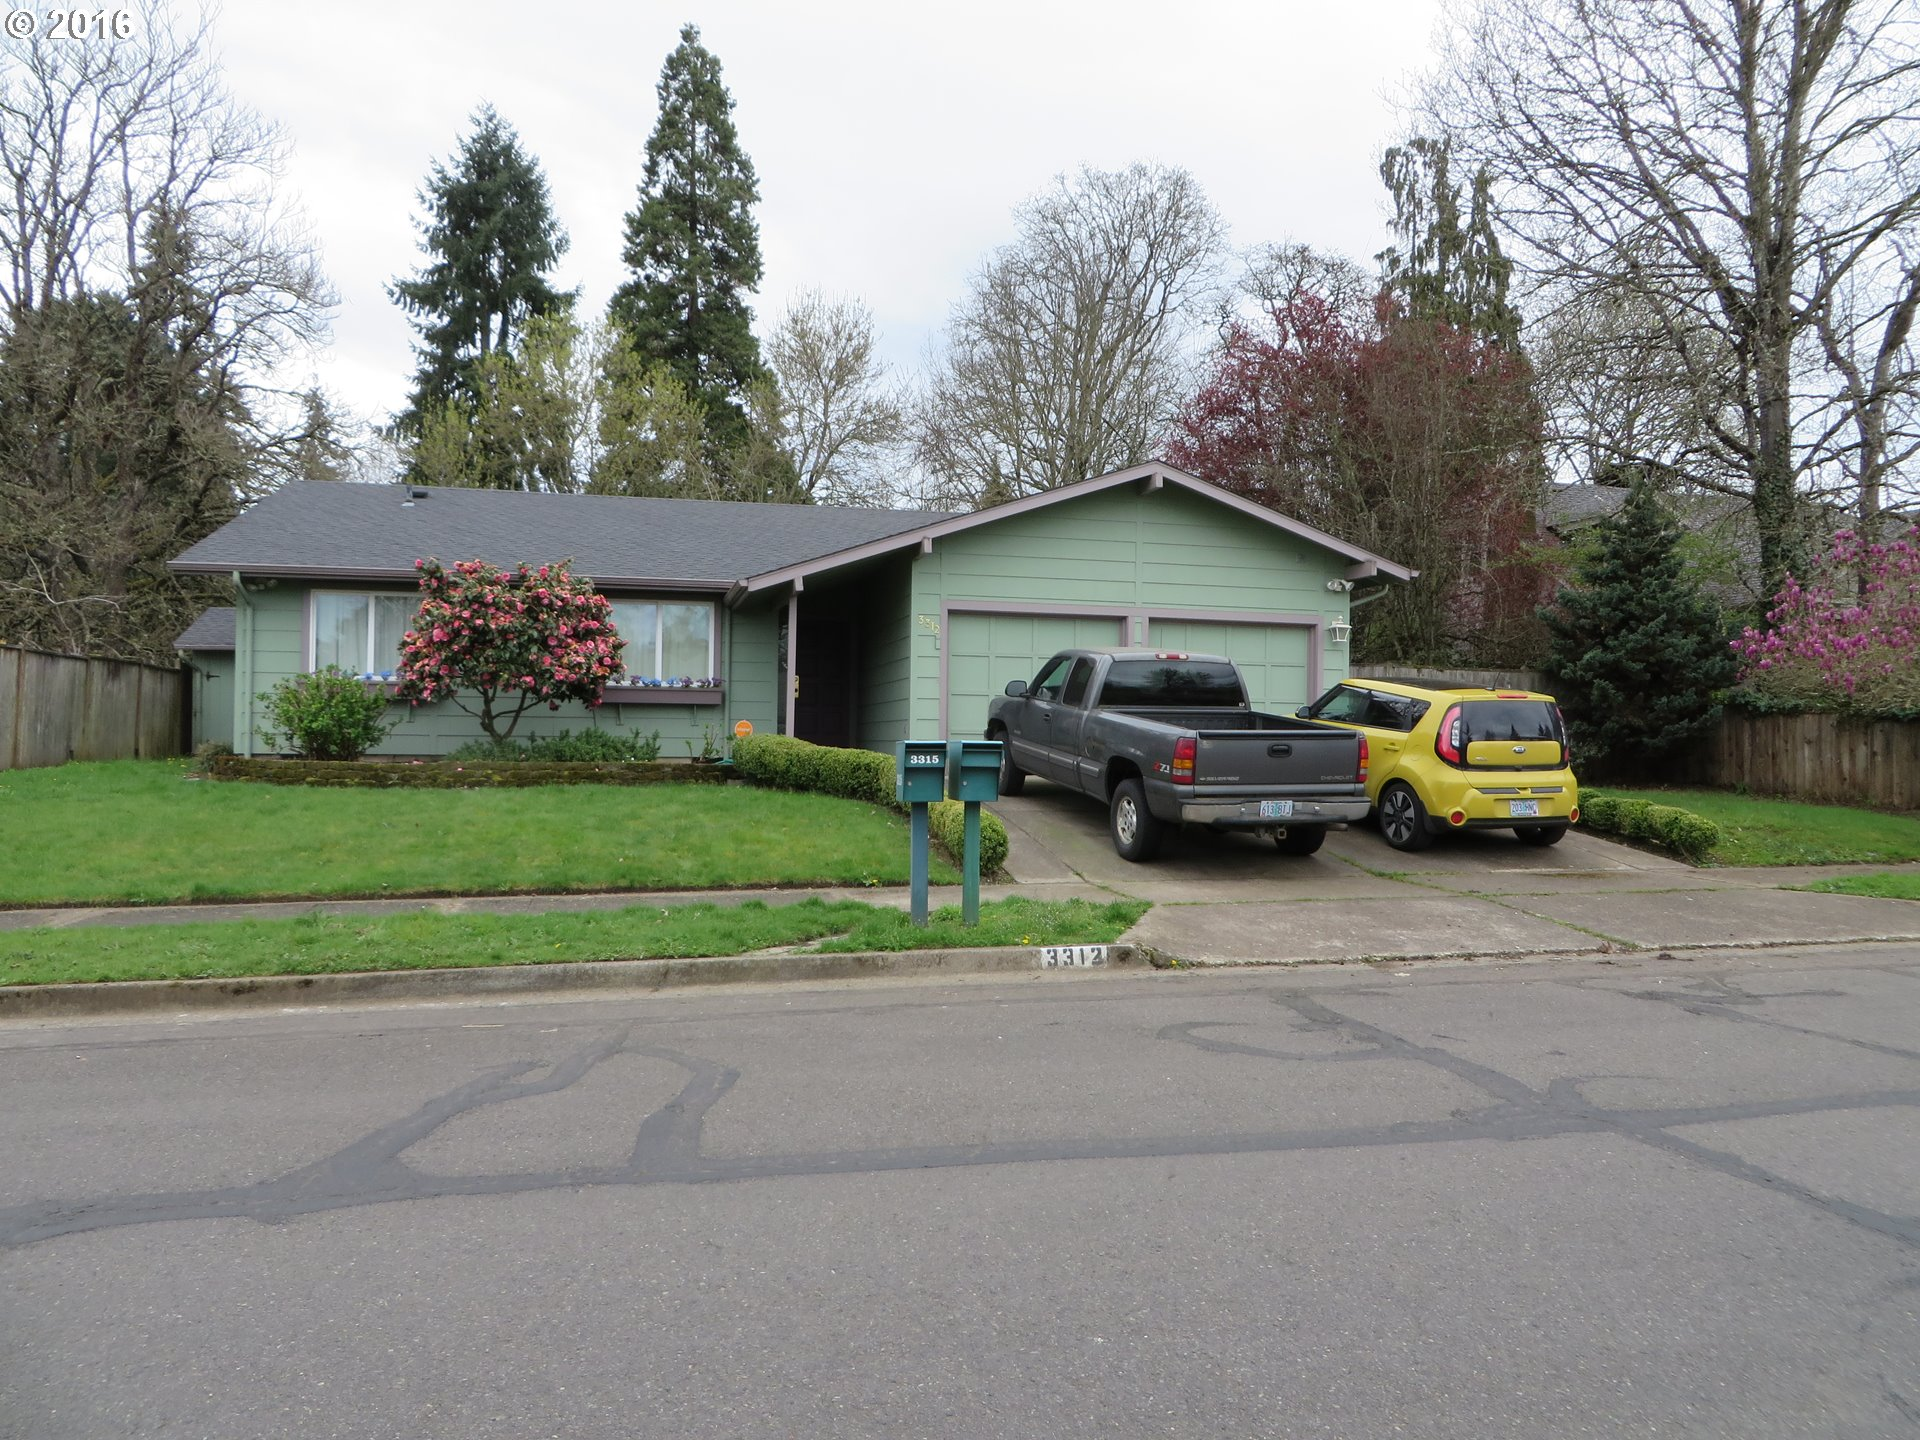 3312 w 14th ave eugene or 97402 us eugene home for sale